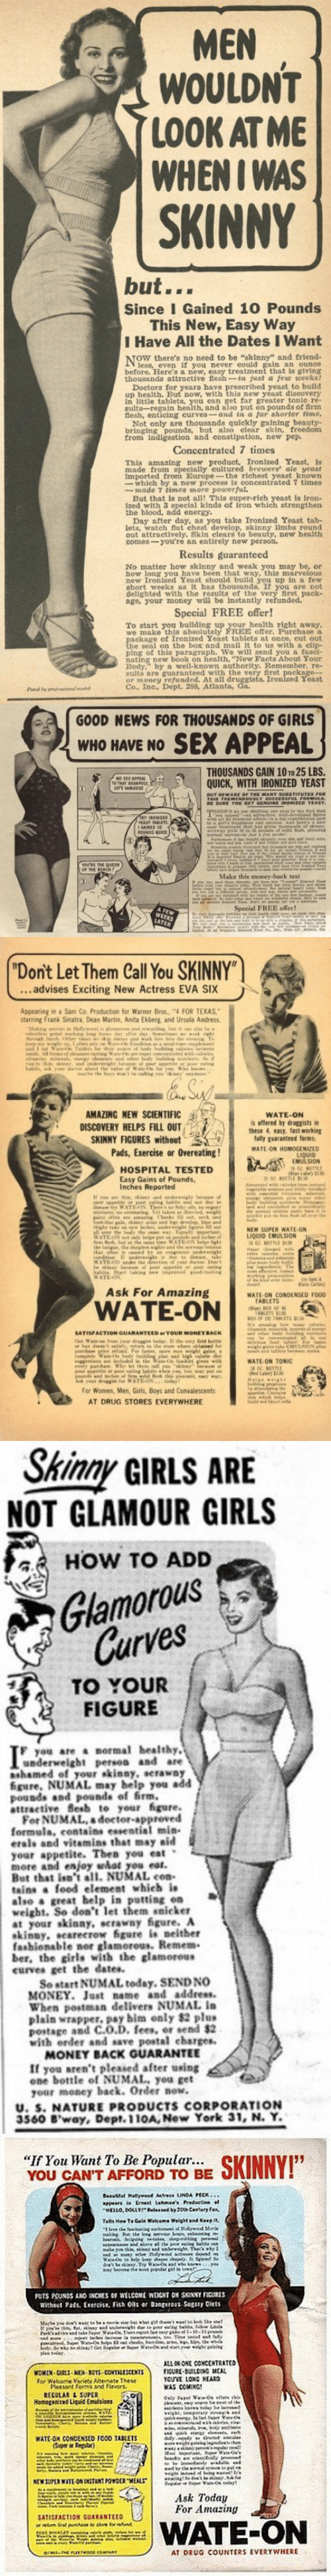 """overeating: MEN  WOULDNT  LOOK AT ME  WHEN I WAS  SKINNY  but...  Since I Gained 10 Pounds  This New, Easy Way  I Have All the Dates I Want  less, even if you never could gain an ounce  before. Here's a new, easy treatment that is gl  thousands attractive flesh-in just a few weeks  Doctors for years have prescribed yeast to build  up health. But now, with this new yeast discovery  can get far greater tonic re-  sults-regain health, and also put on pounds of firm  lesh, enticing curves-and in a far shorter time  in little tablets  Not only are thousands quiekly gaining beauty-  bringing pounds, but also clear skin, freedom  from indigestion and constipation, new pep  Concentrated 7 times  This amazing new product, Ironized Yeast, is  made from specially cultured breteers ale yeast  imported from Europe- the richest yeast known  which by a new process is concentrated 7 times  --nade times รnore poo erful.  But that is not all! This super-rich yeast is iron-  ized with 3 special kinds of iron which strengthen  the blood, add energy  Day after day, as you take Ironized Yeast tab  lets, watch flat chest develop, skinny limbs round  out attractively. Skin clears to beauty, new health  comes-you're an entirely new person.  Results guaranteed  No matter how skinny and weak you may be, or  how long you have been that way, this marvelous  new Ironized Yeast should build you up in a few  short weeks as it has thousands. If you are not  delighted with the results of the very first pack-  age, your money will be instantl  Special FREE offer!  To start you building up  we make this absolutely FREE offer. Purchase a  health right away  e of Ironized Yeast tablets at once, cut out  seal on the box and mail it to us with a clip-  ping of this paragraph. We will send you a fasci-  nating new book on health, """"New Facts About Your  Body,"""" by a well-known authority. Remember, re-  sults are guaranteed with the very first packa  or money refunded. At all dru  Co. Inc., Dept. 288, Atlanta"""